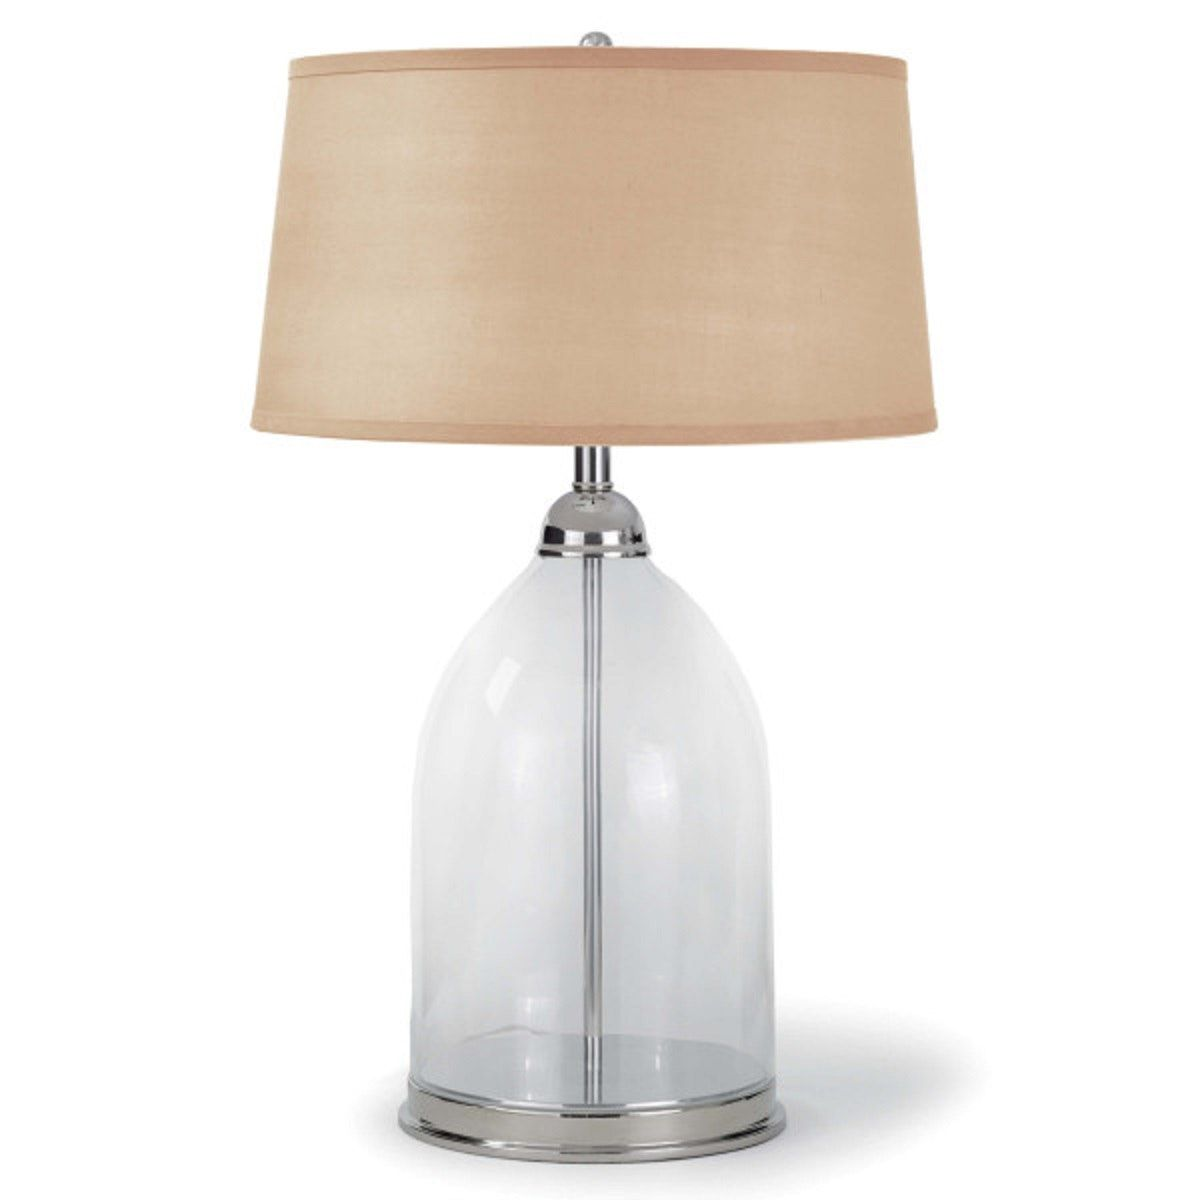 Glass Bell Jar Lamp With Images Lamp